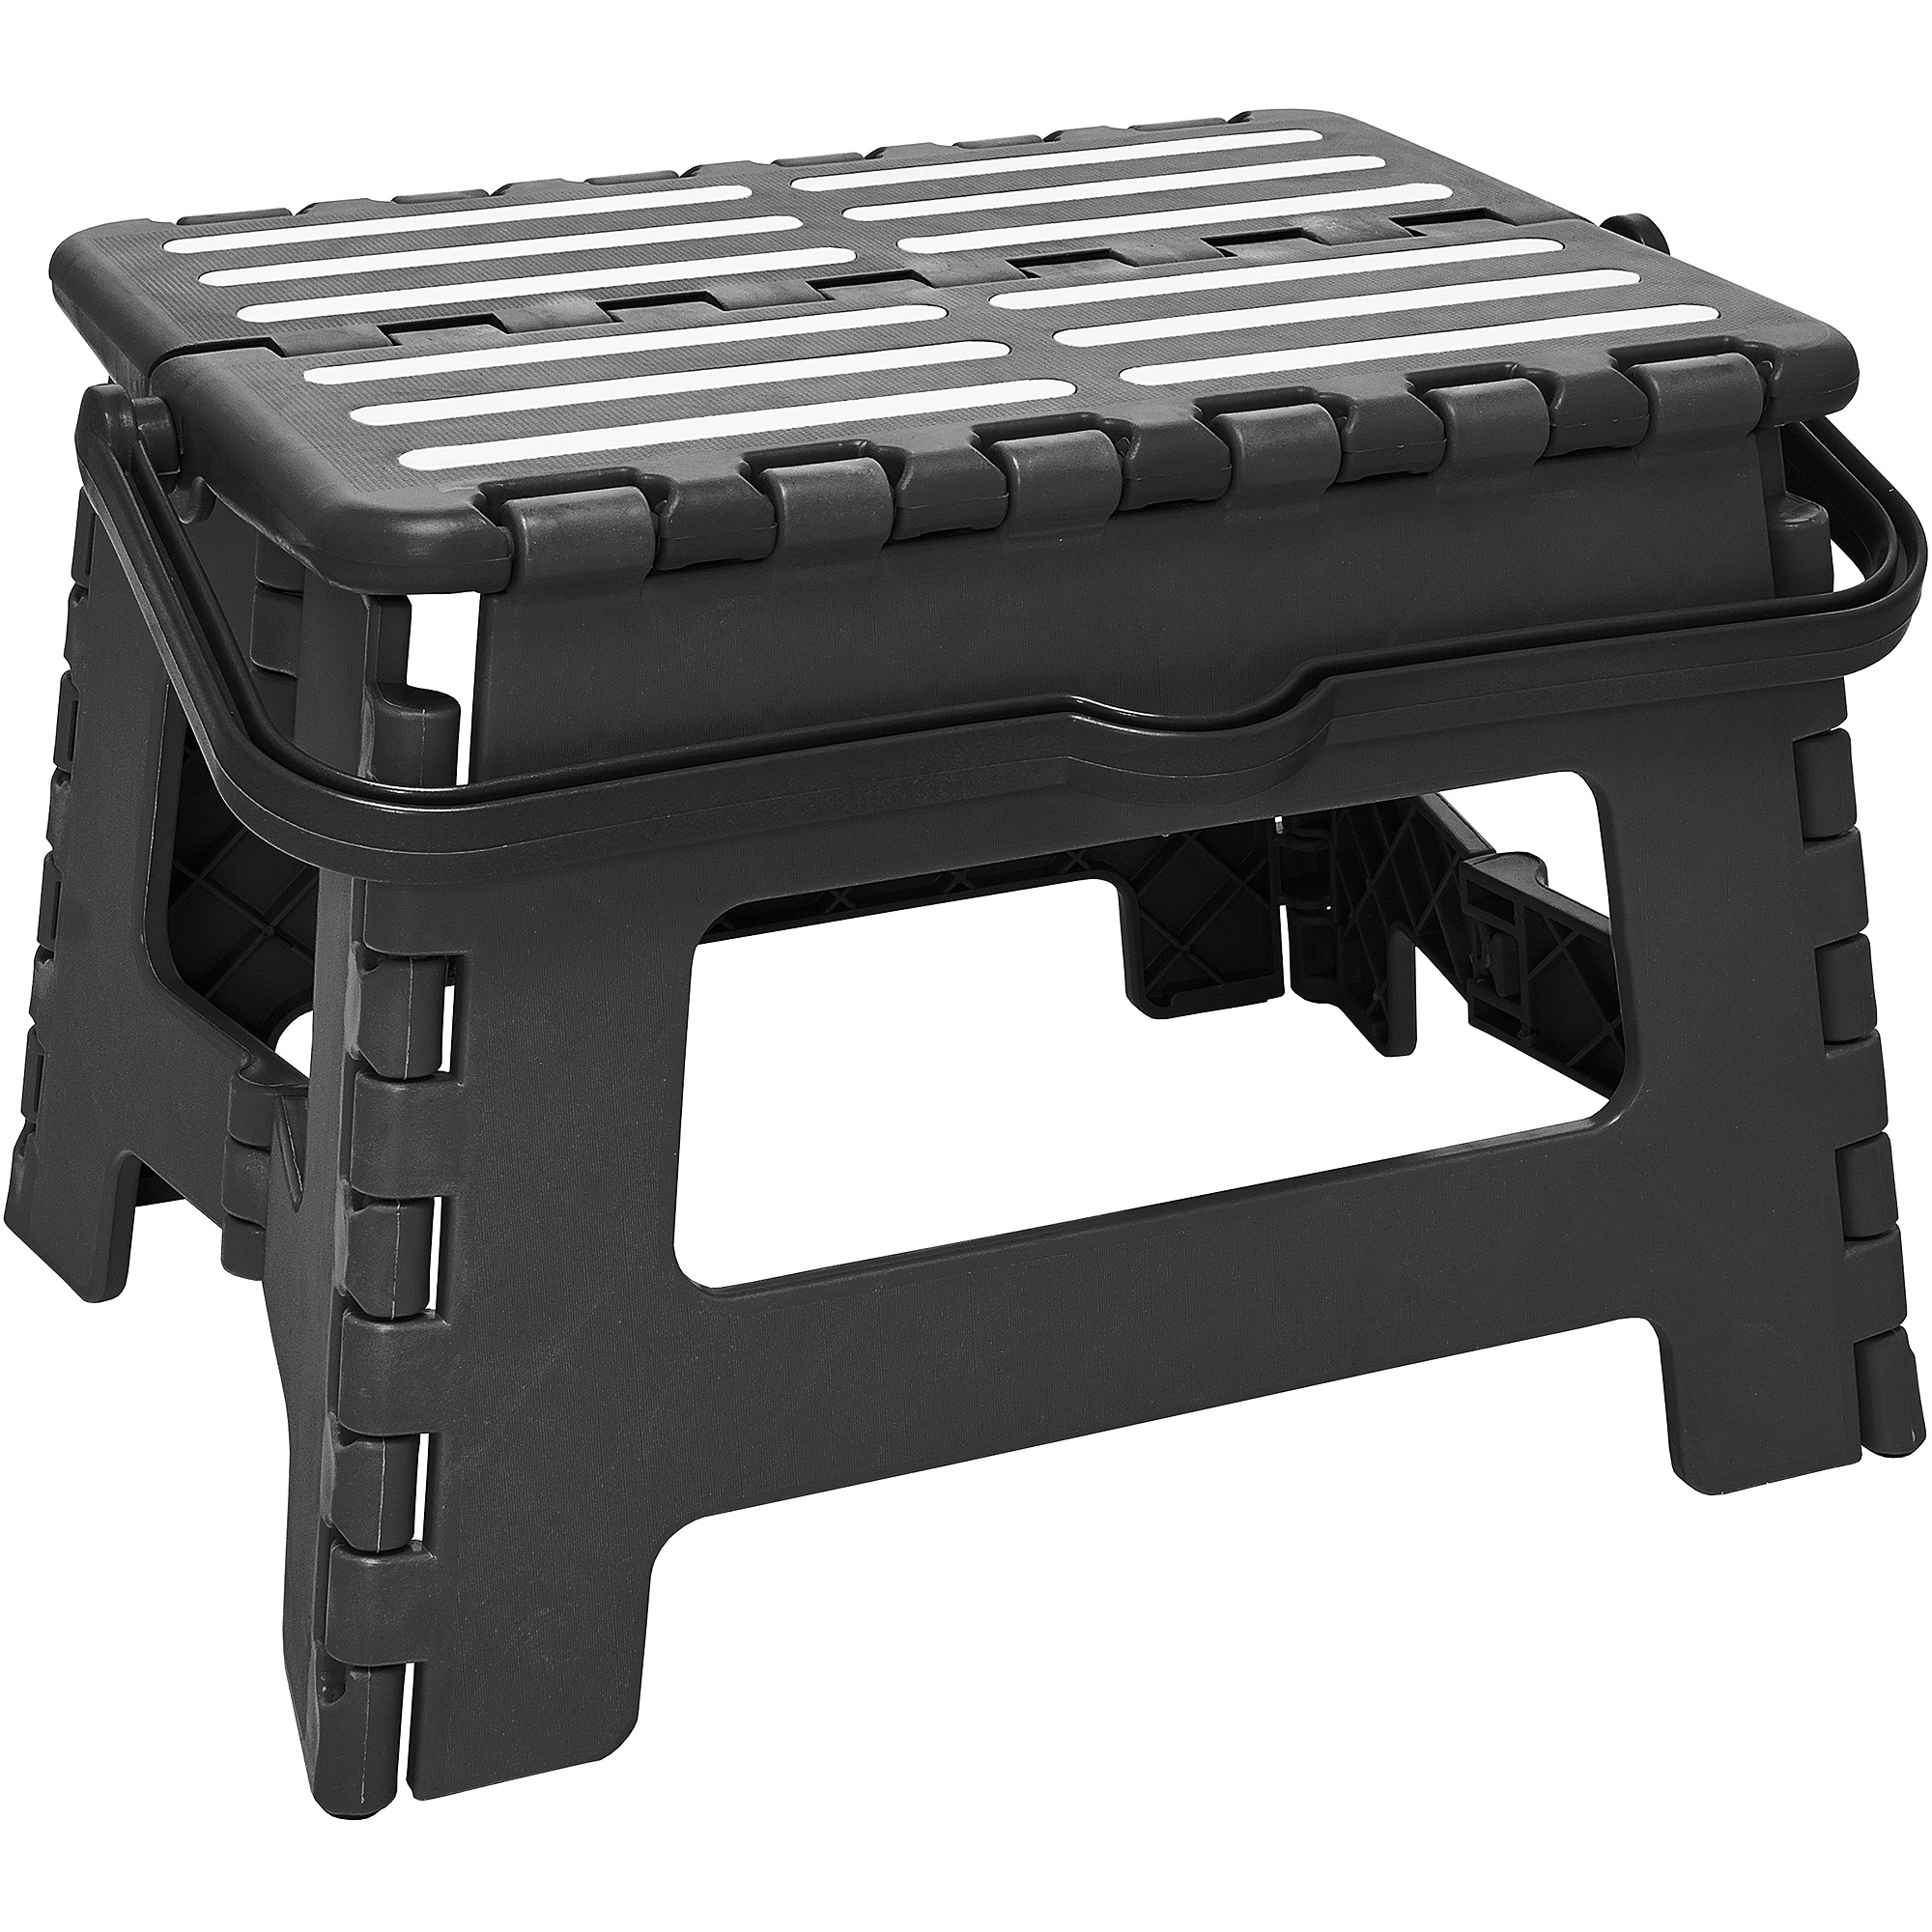 Simplify Striped Folding Step Stool With Handle Walmart Com